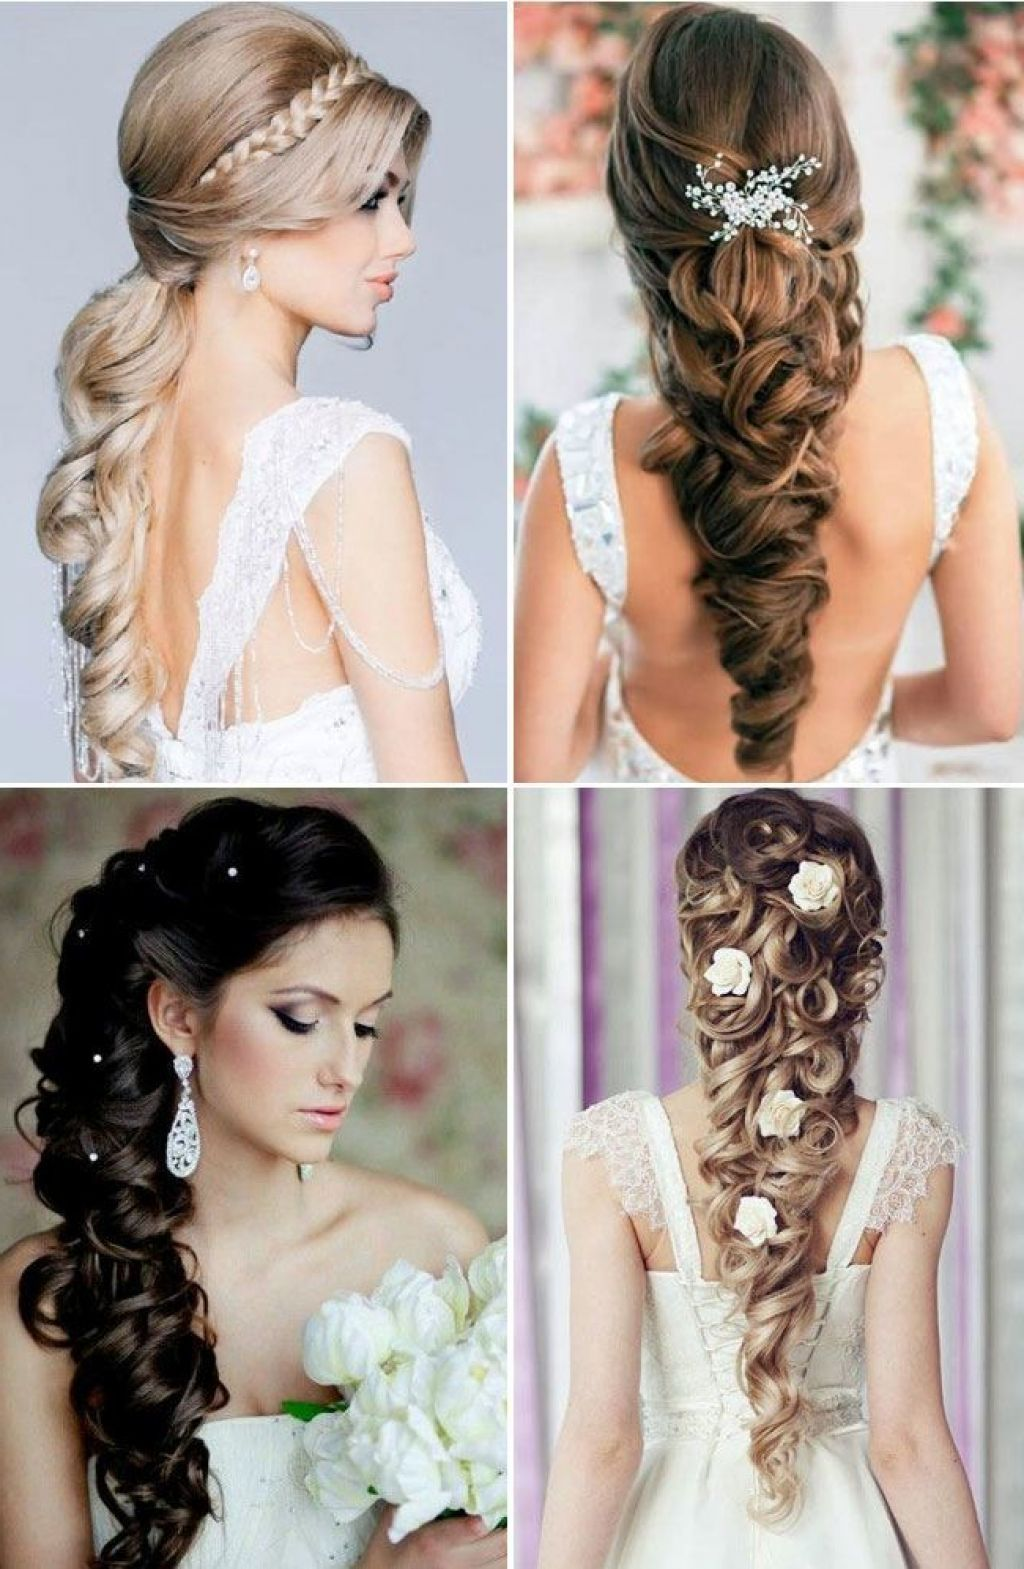 Bridal Hairstyles For Long Hair Western Amp Indian Bridal Hairstyles 55c02db8e306f Classic Wedding Hair Bride Hairstyles For Long Hair Best Wedding Hairstyles